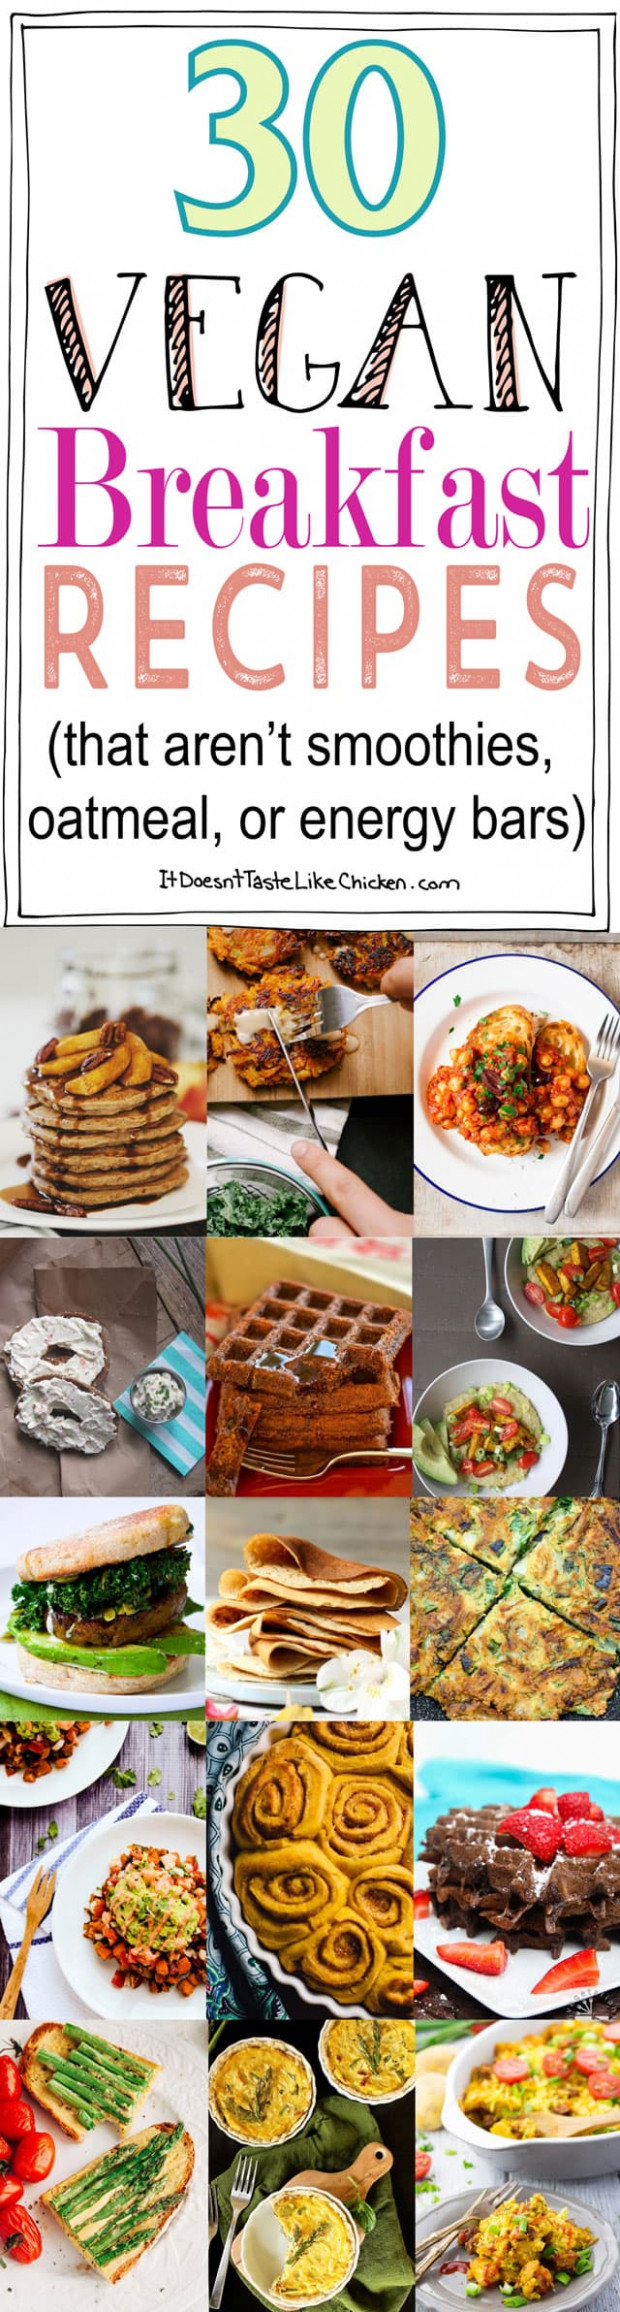 13 Vegan Breakfast Recipes (that Aren't Smoothies, Oatmeal ..